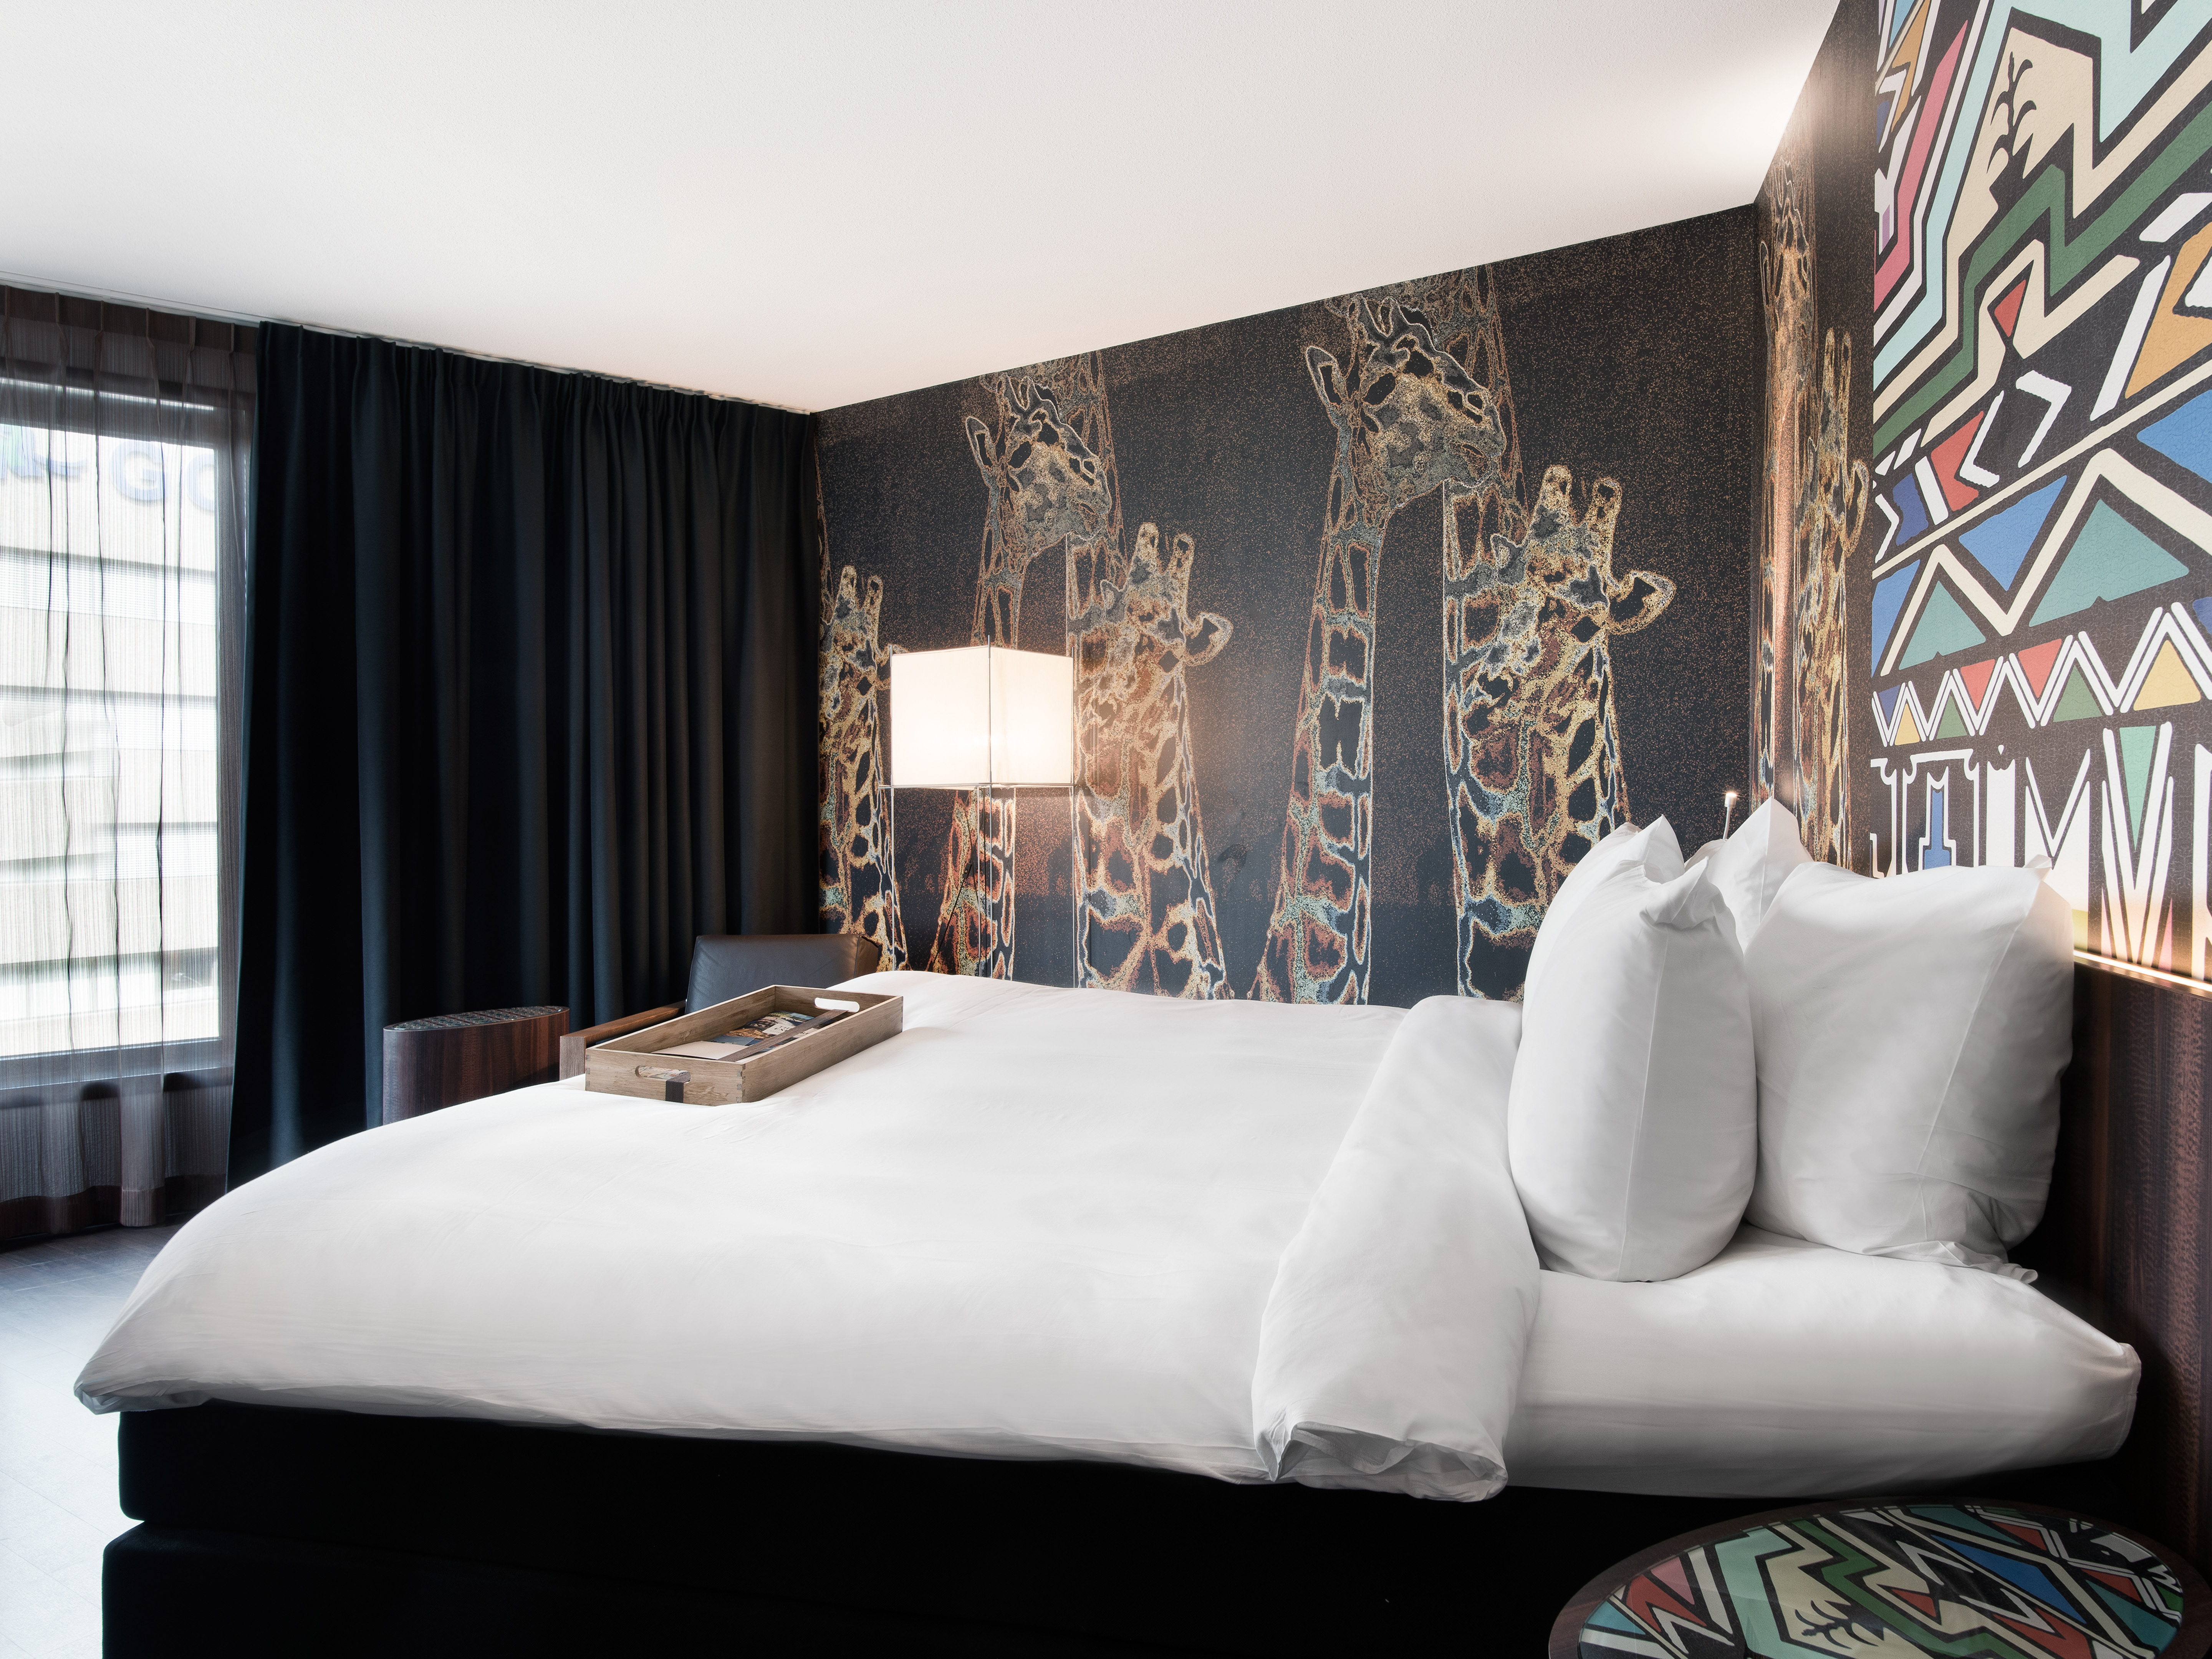 Rooms suites at mainport in rotterdam design hotels for Designhotel rotterdam